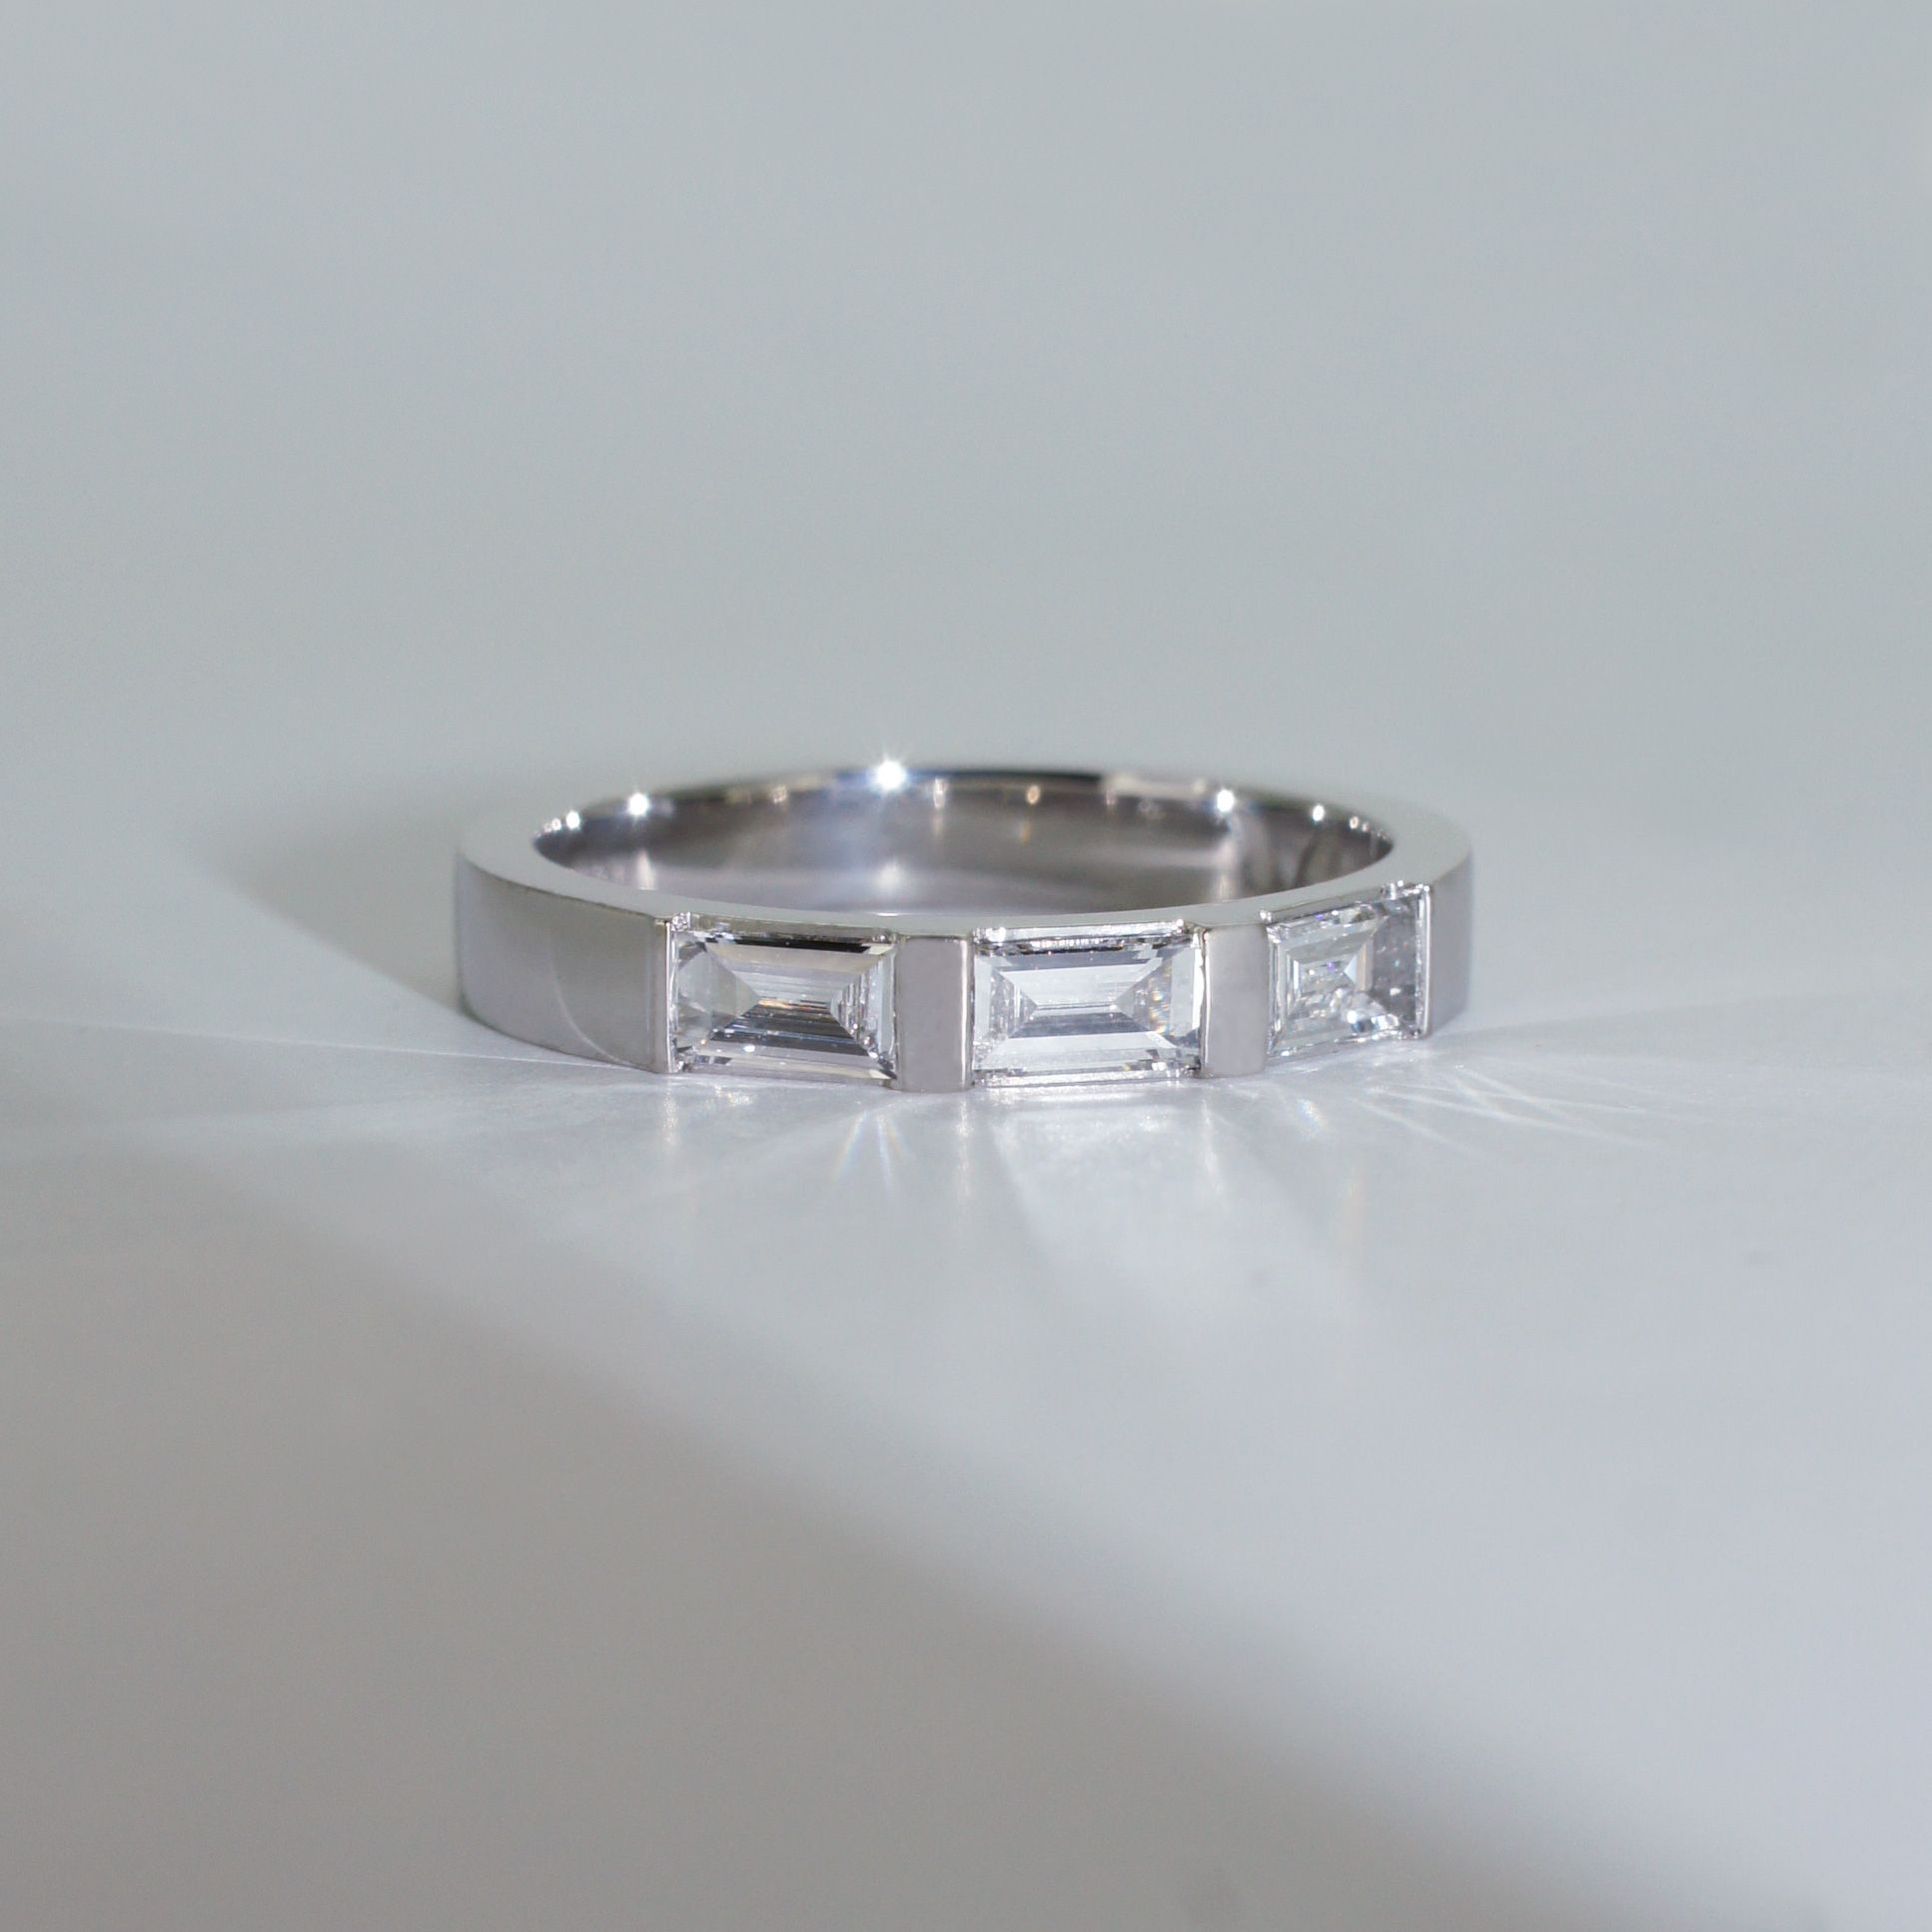 This wedding band was custom made to go with our Half Moon